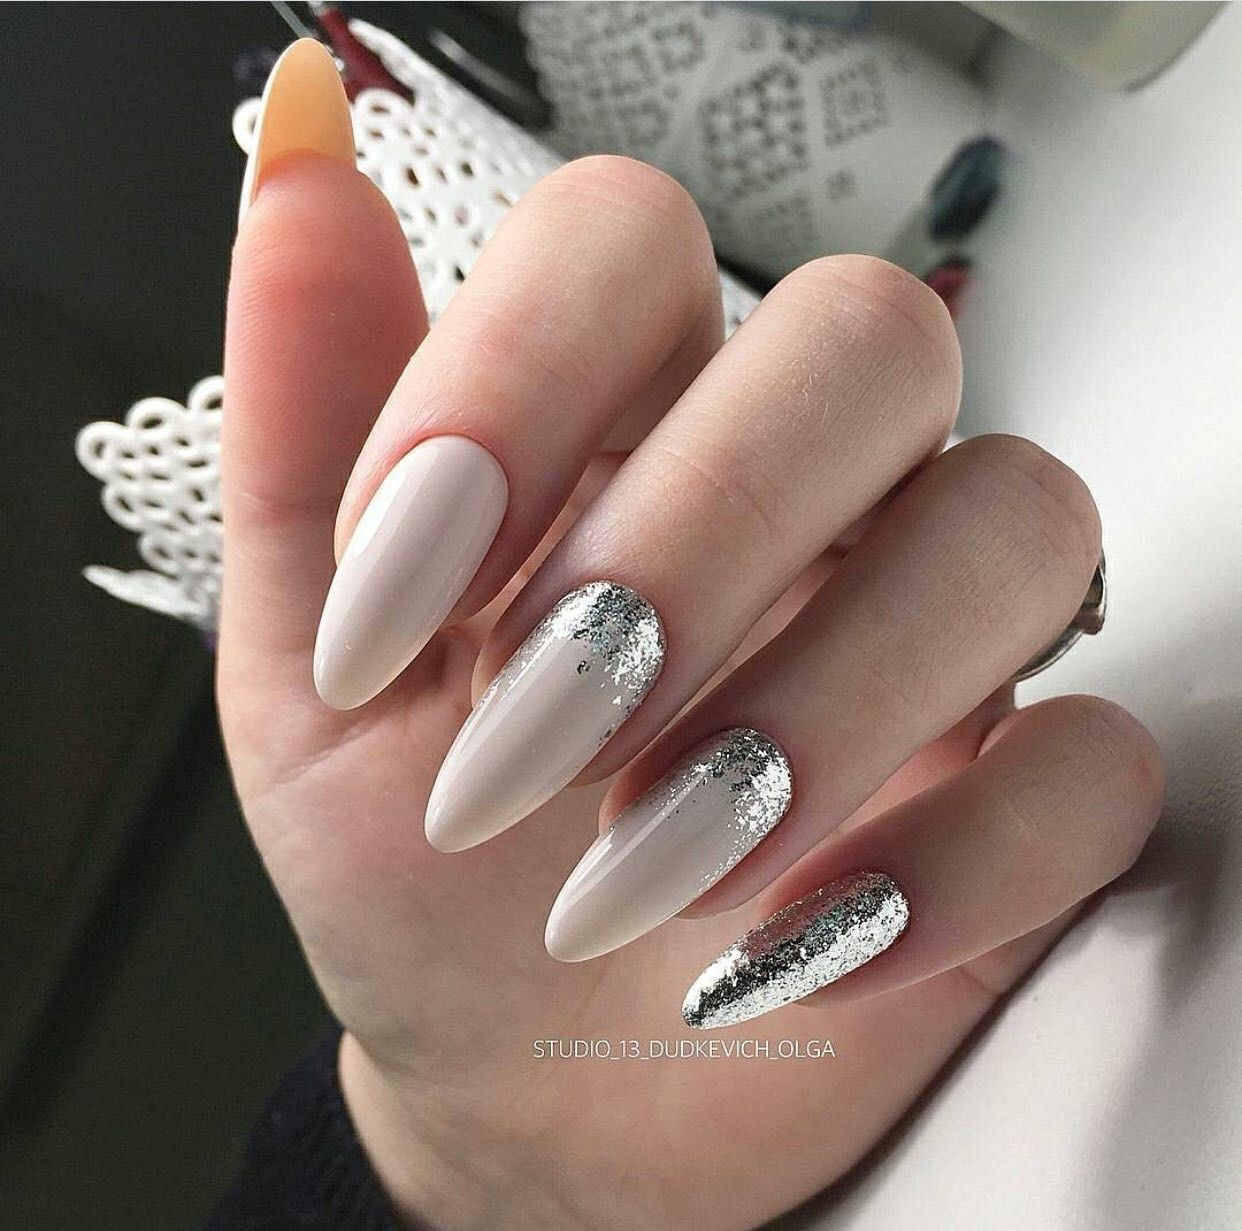 White and glitter nail art